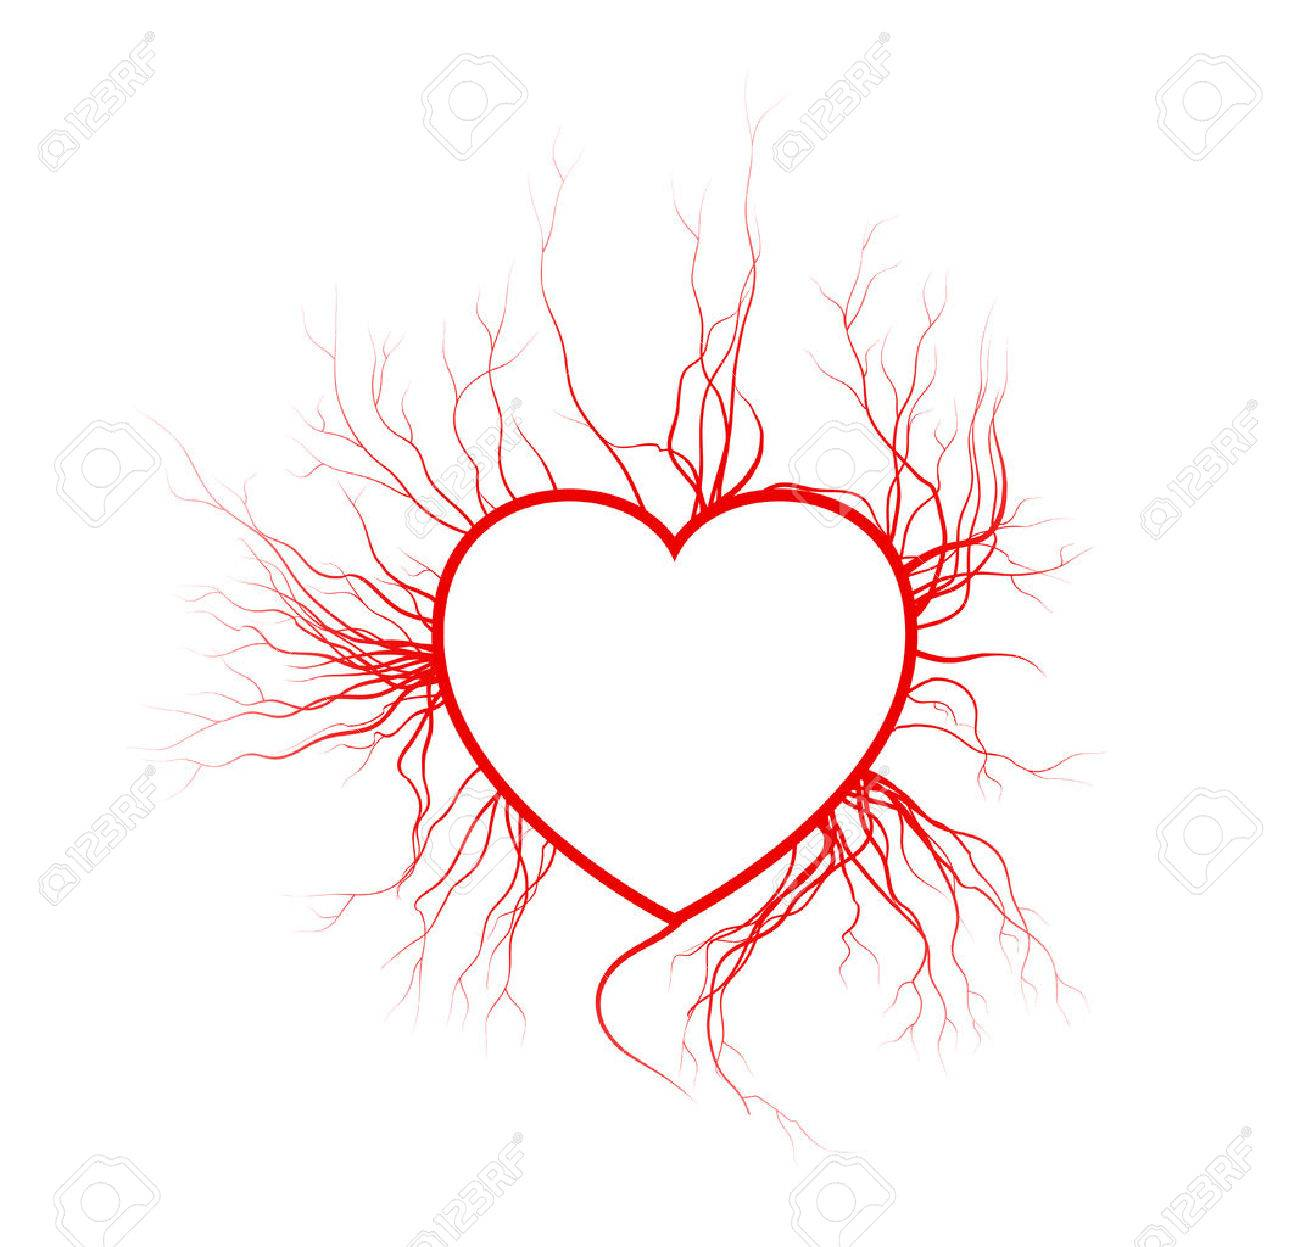 Human Veins With Heart Red Love Blood Vessels Valentine Design